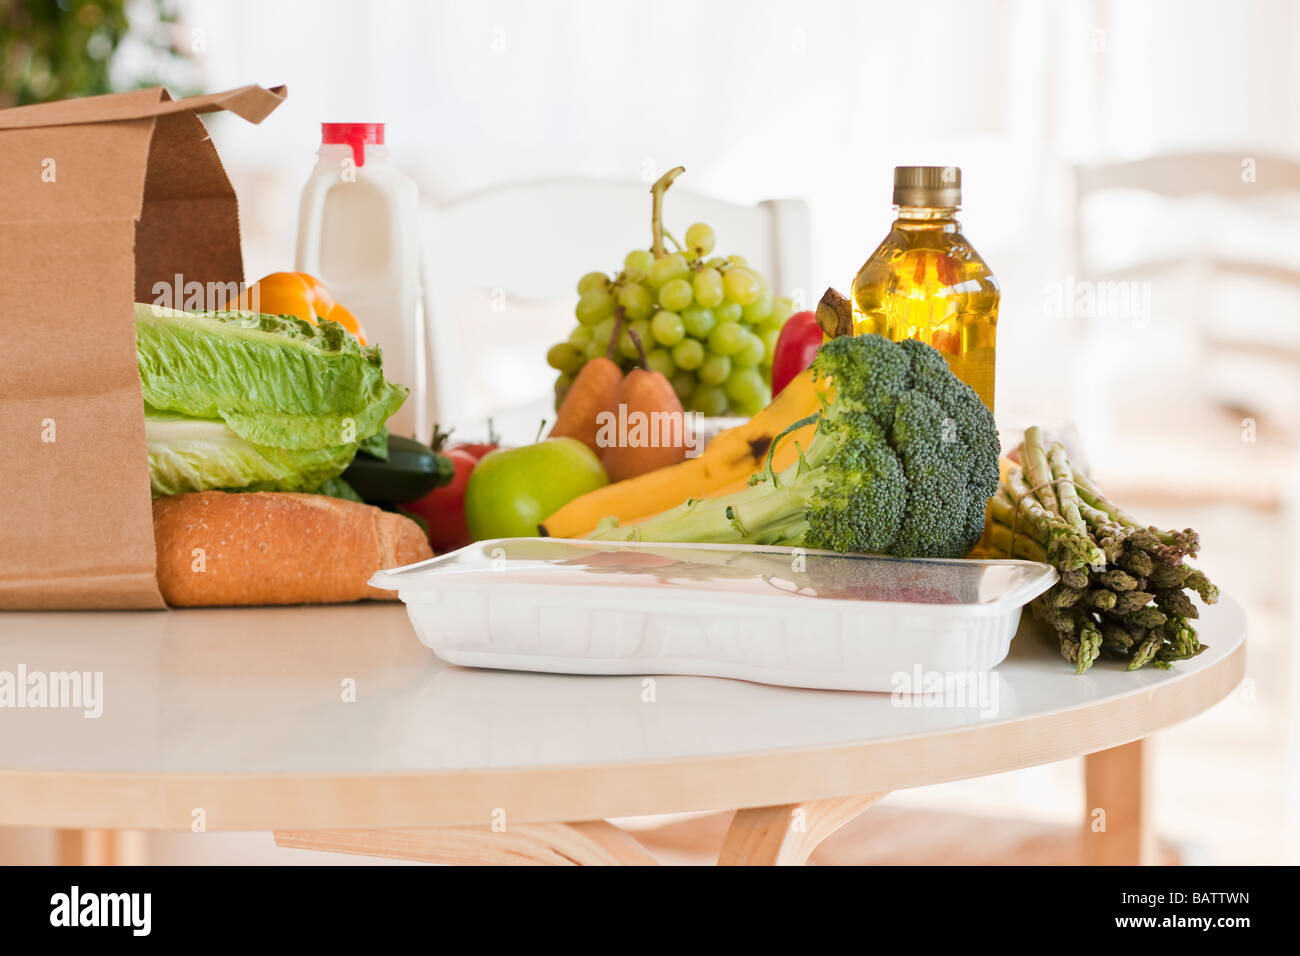 Paper bag filled with groceries - Stock Image